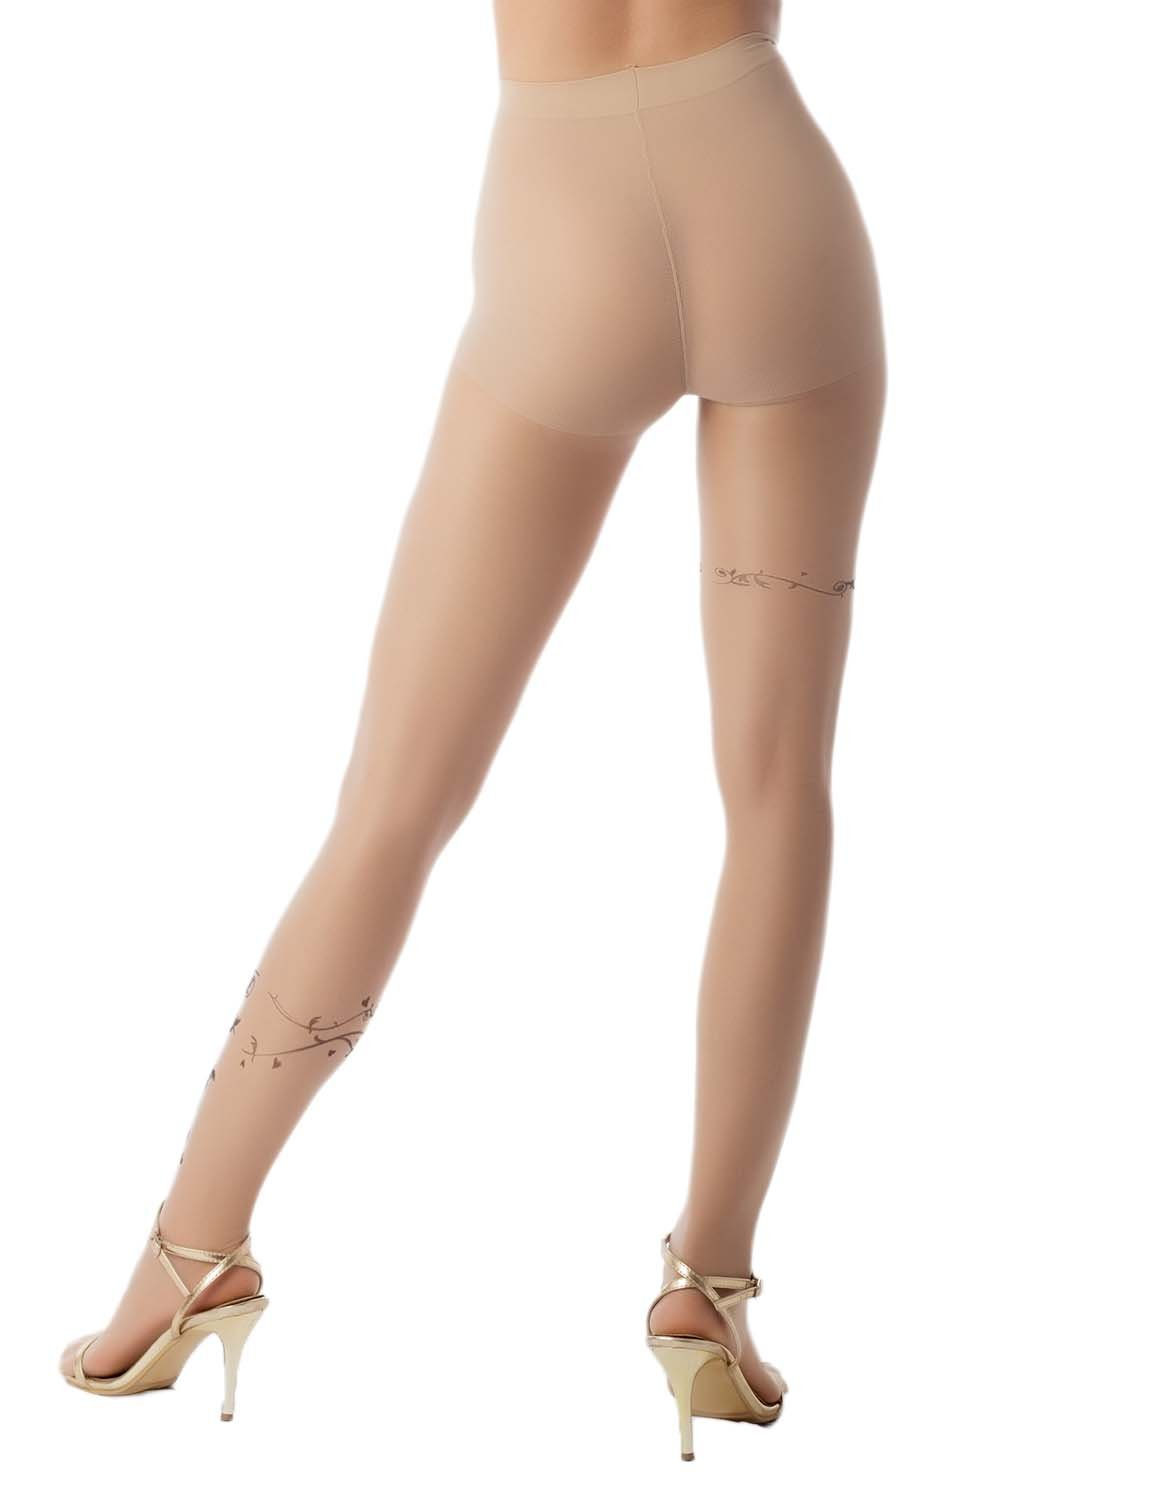 Women's Flower Vine Print Tights Soft 5 DEN Ultra Sheer Tights Pantyhose, Size: One Size, Beige